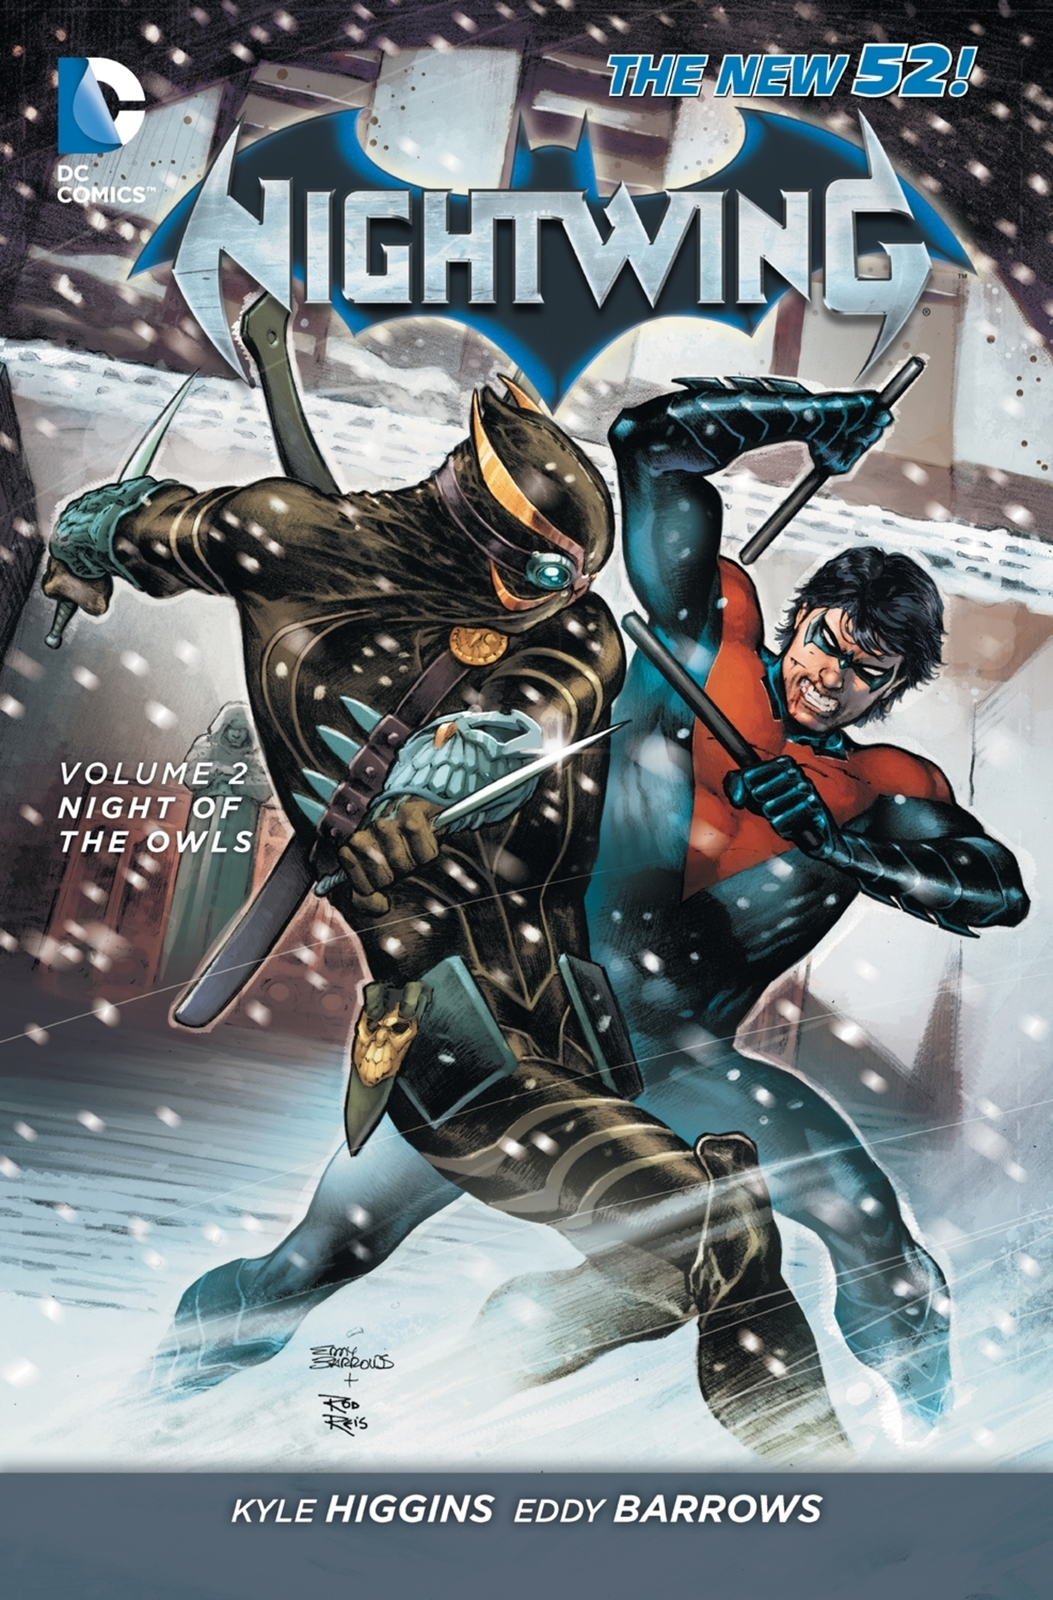 Nightwing Vol. 2 by Kyle Higgins image